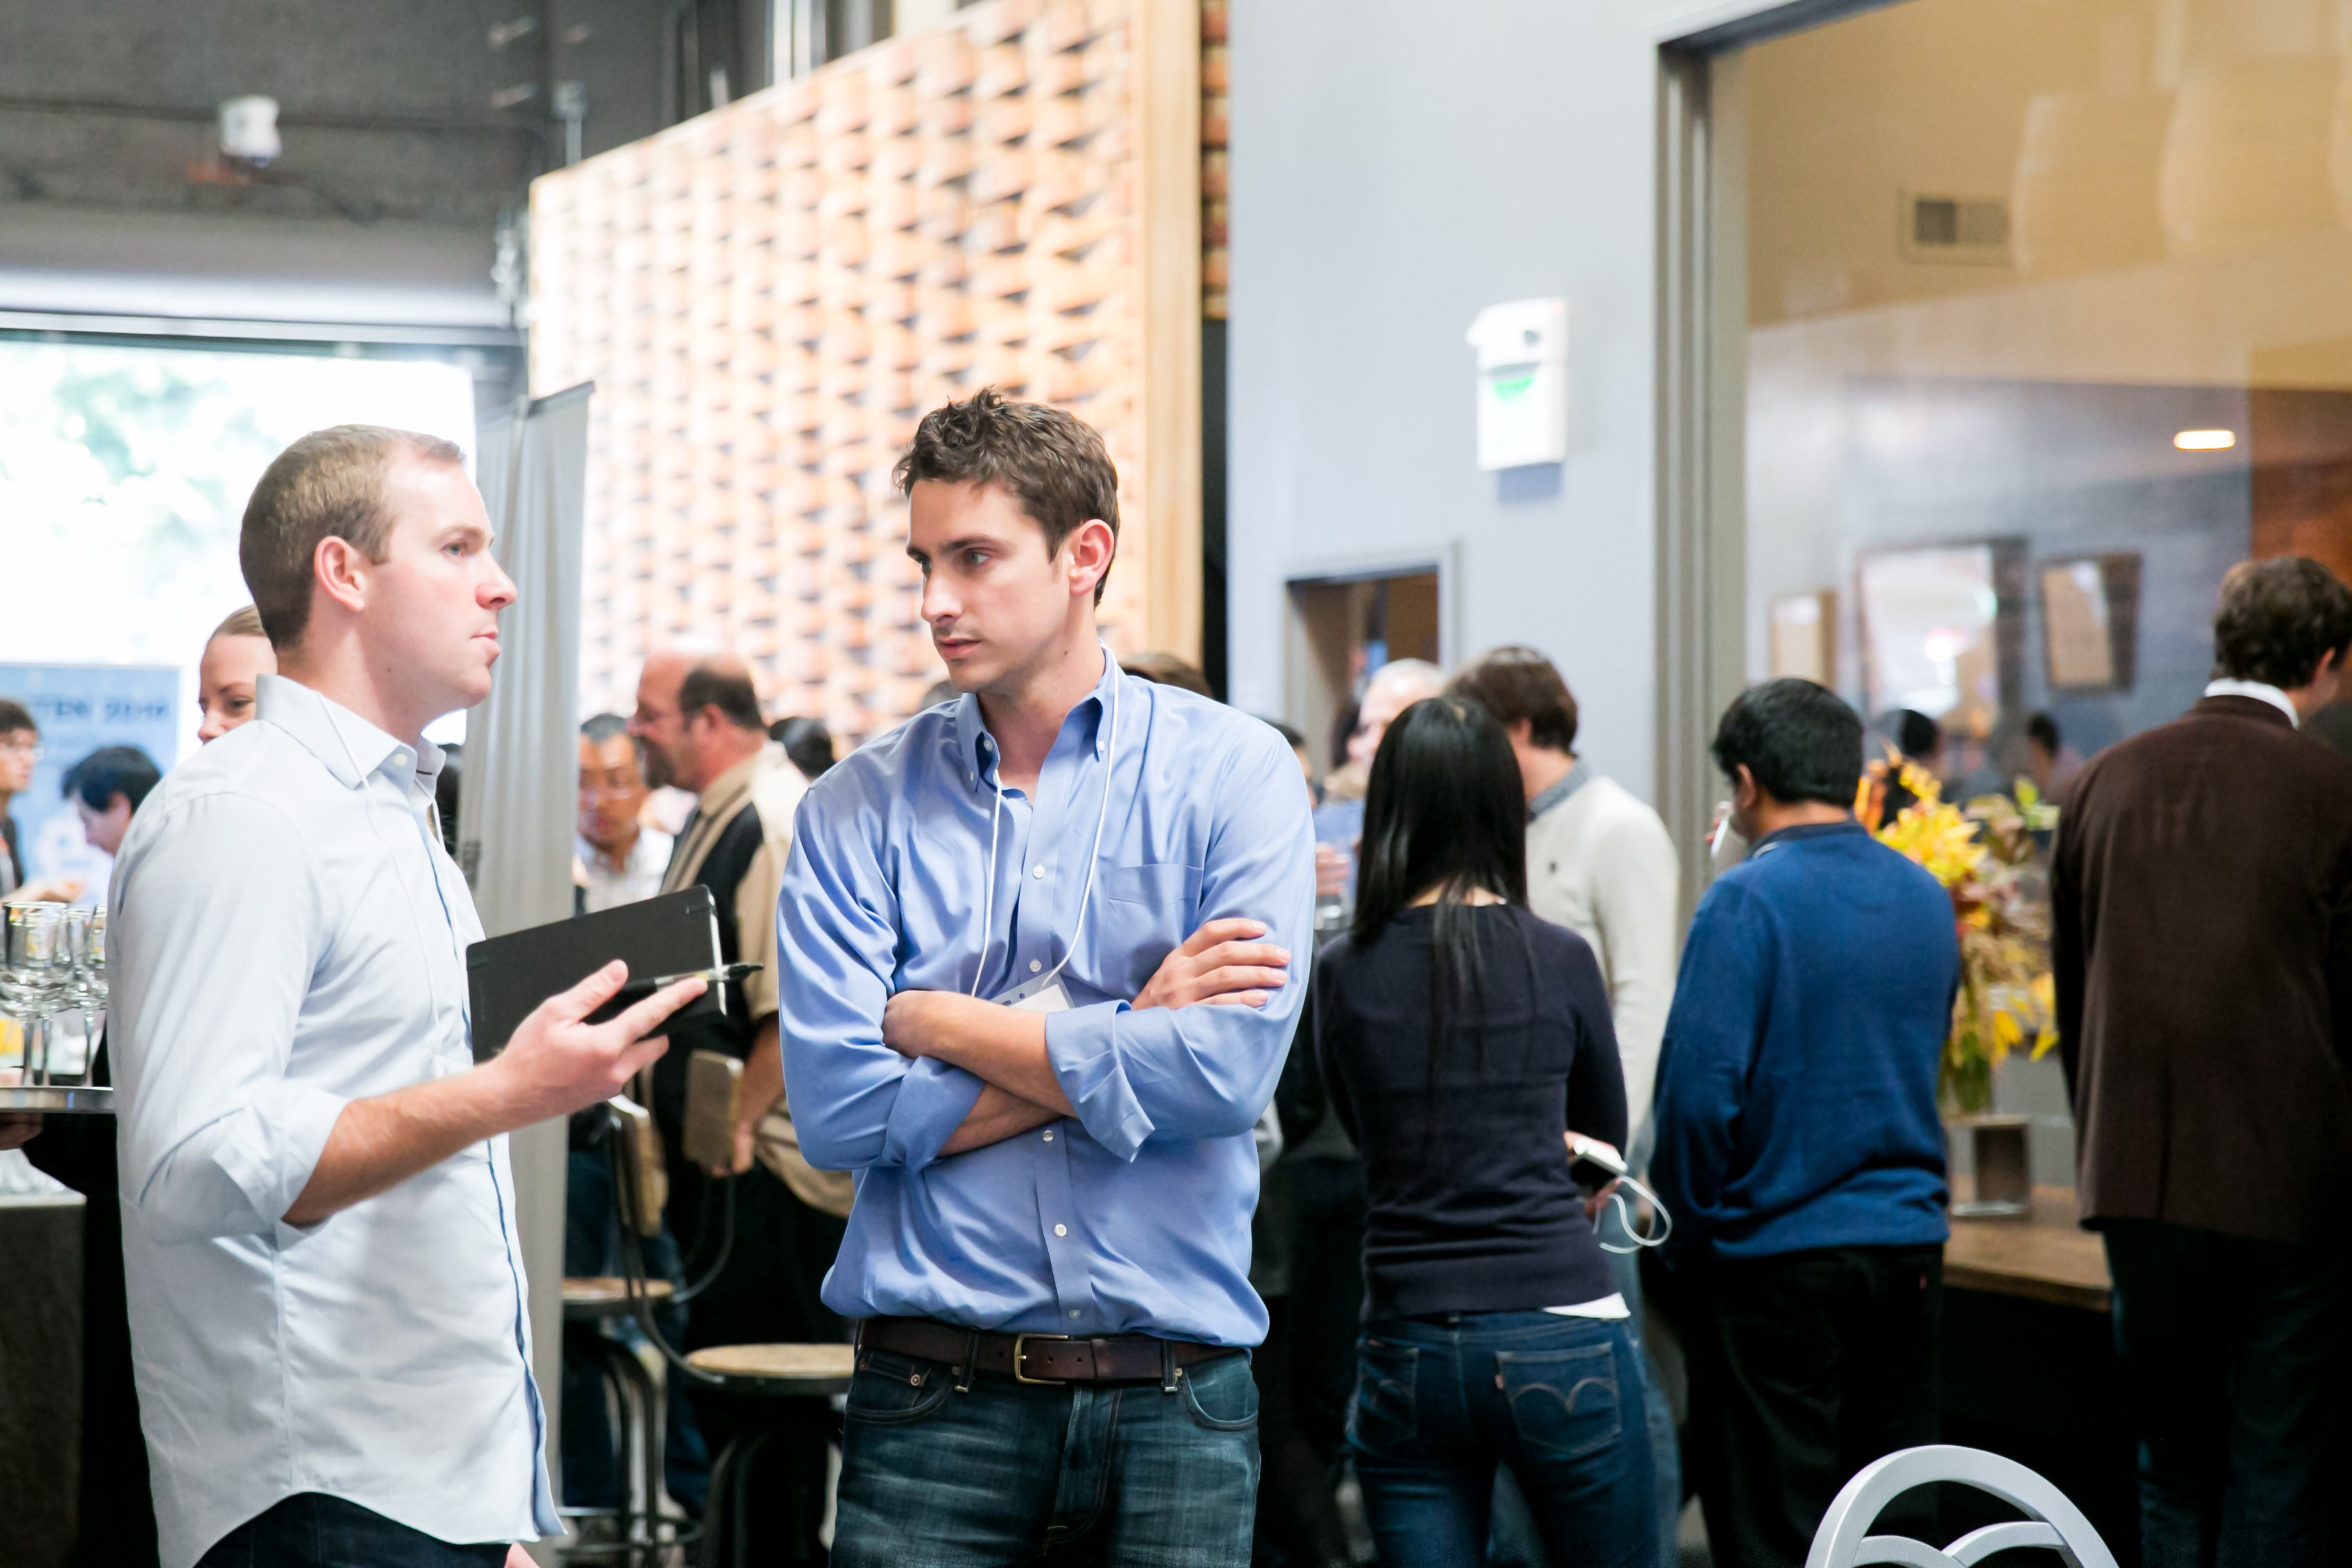 Attendees chatting